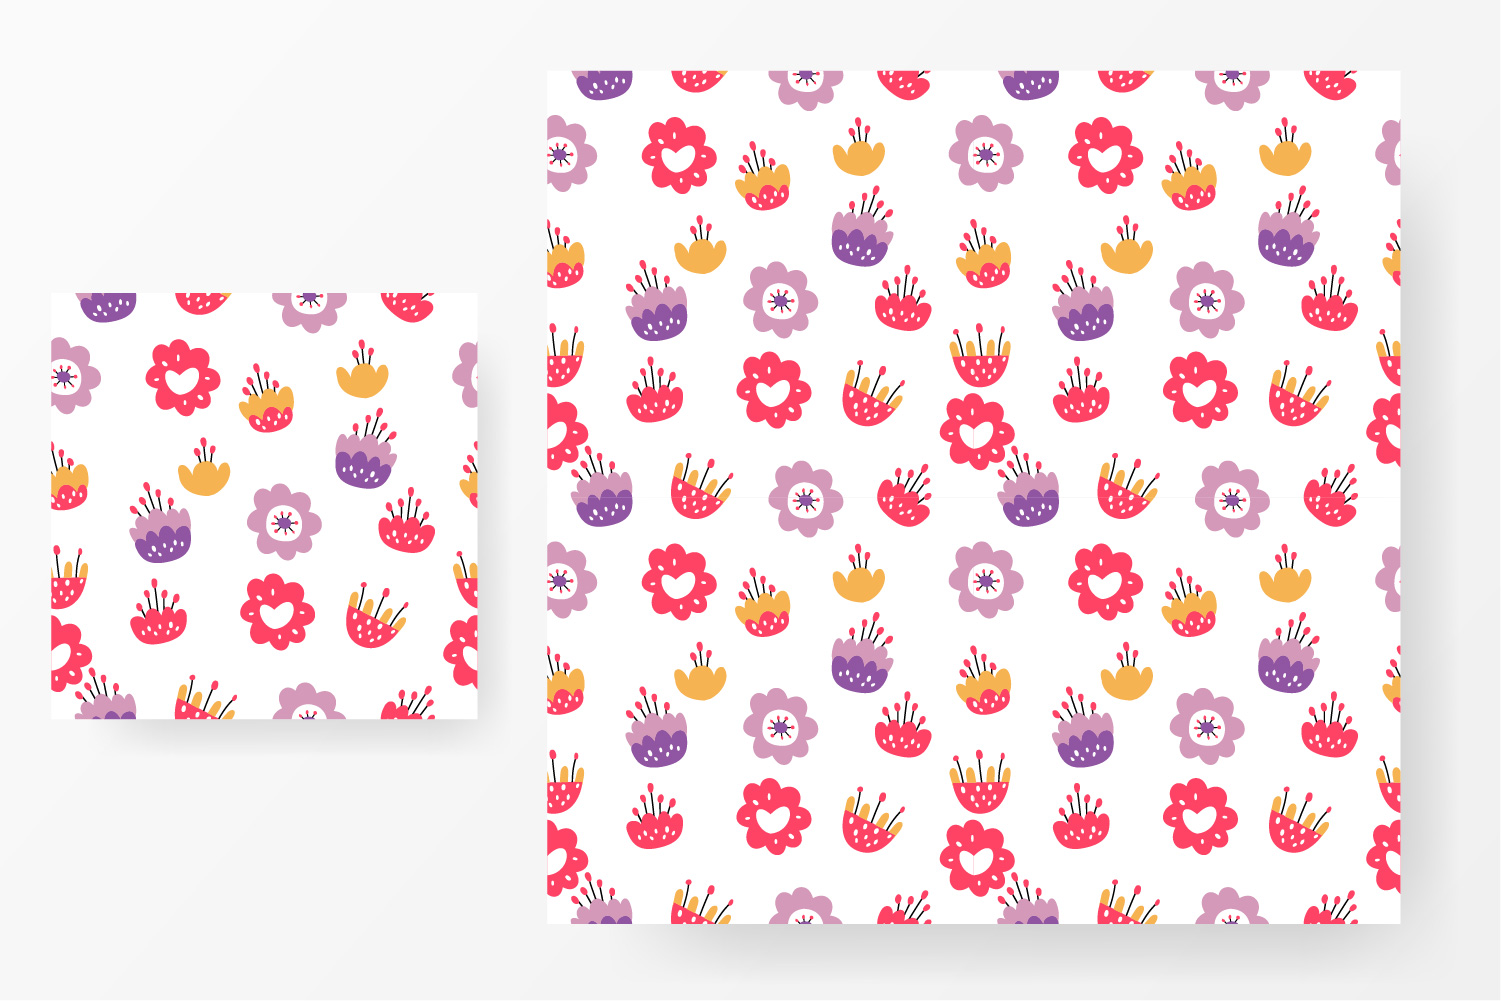 Flower design collection svg example image 6